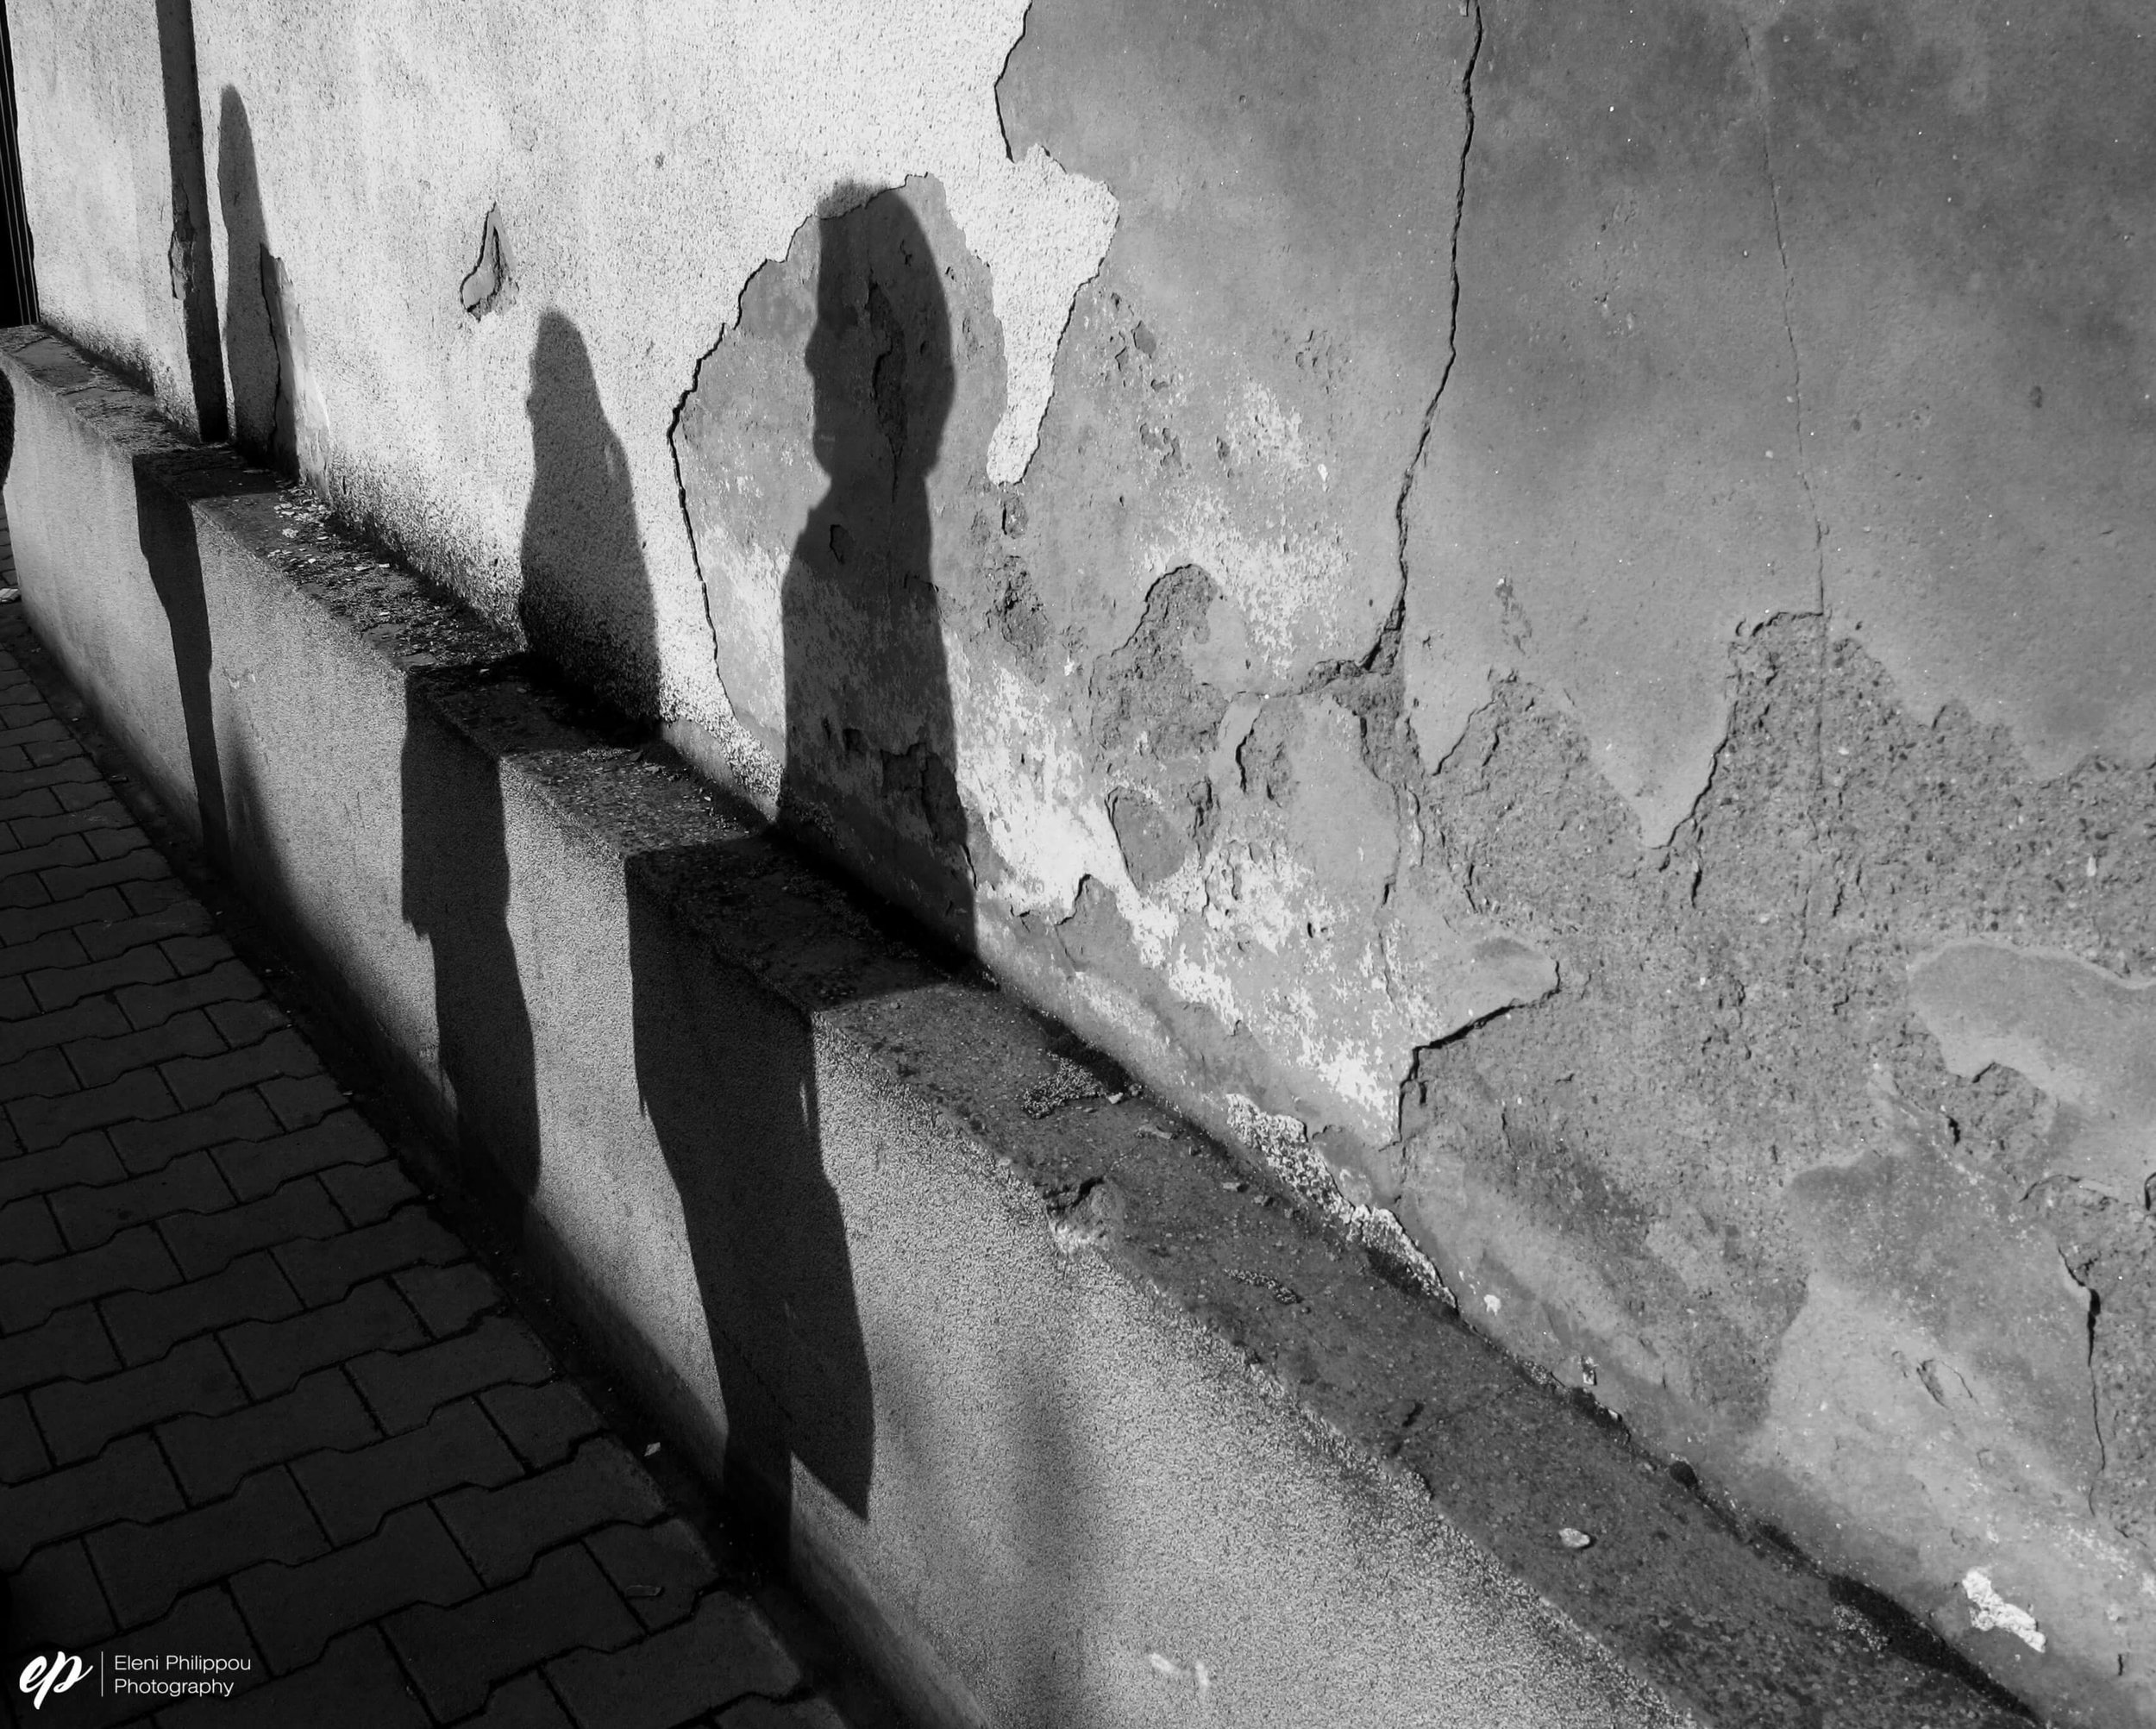 Figures sit on an old wall during an afternoon walk dissecting neighbourhoods.